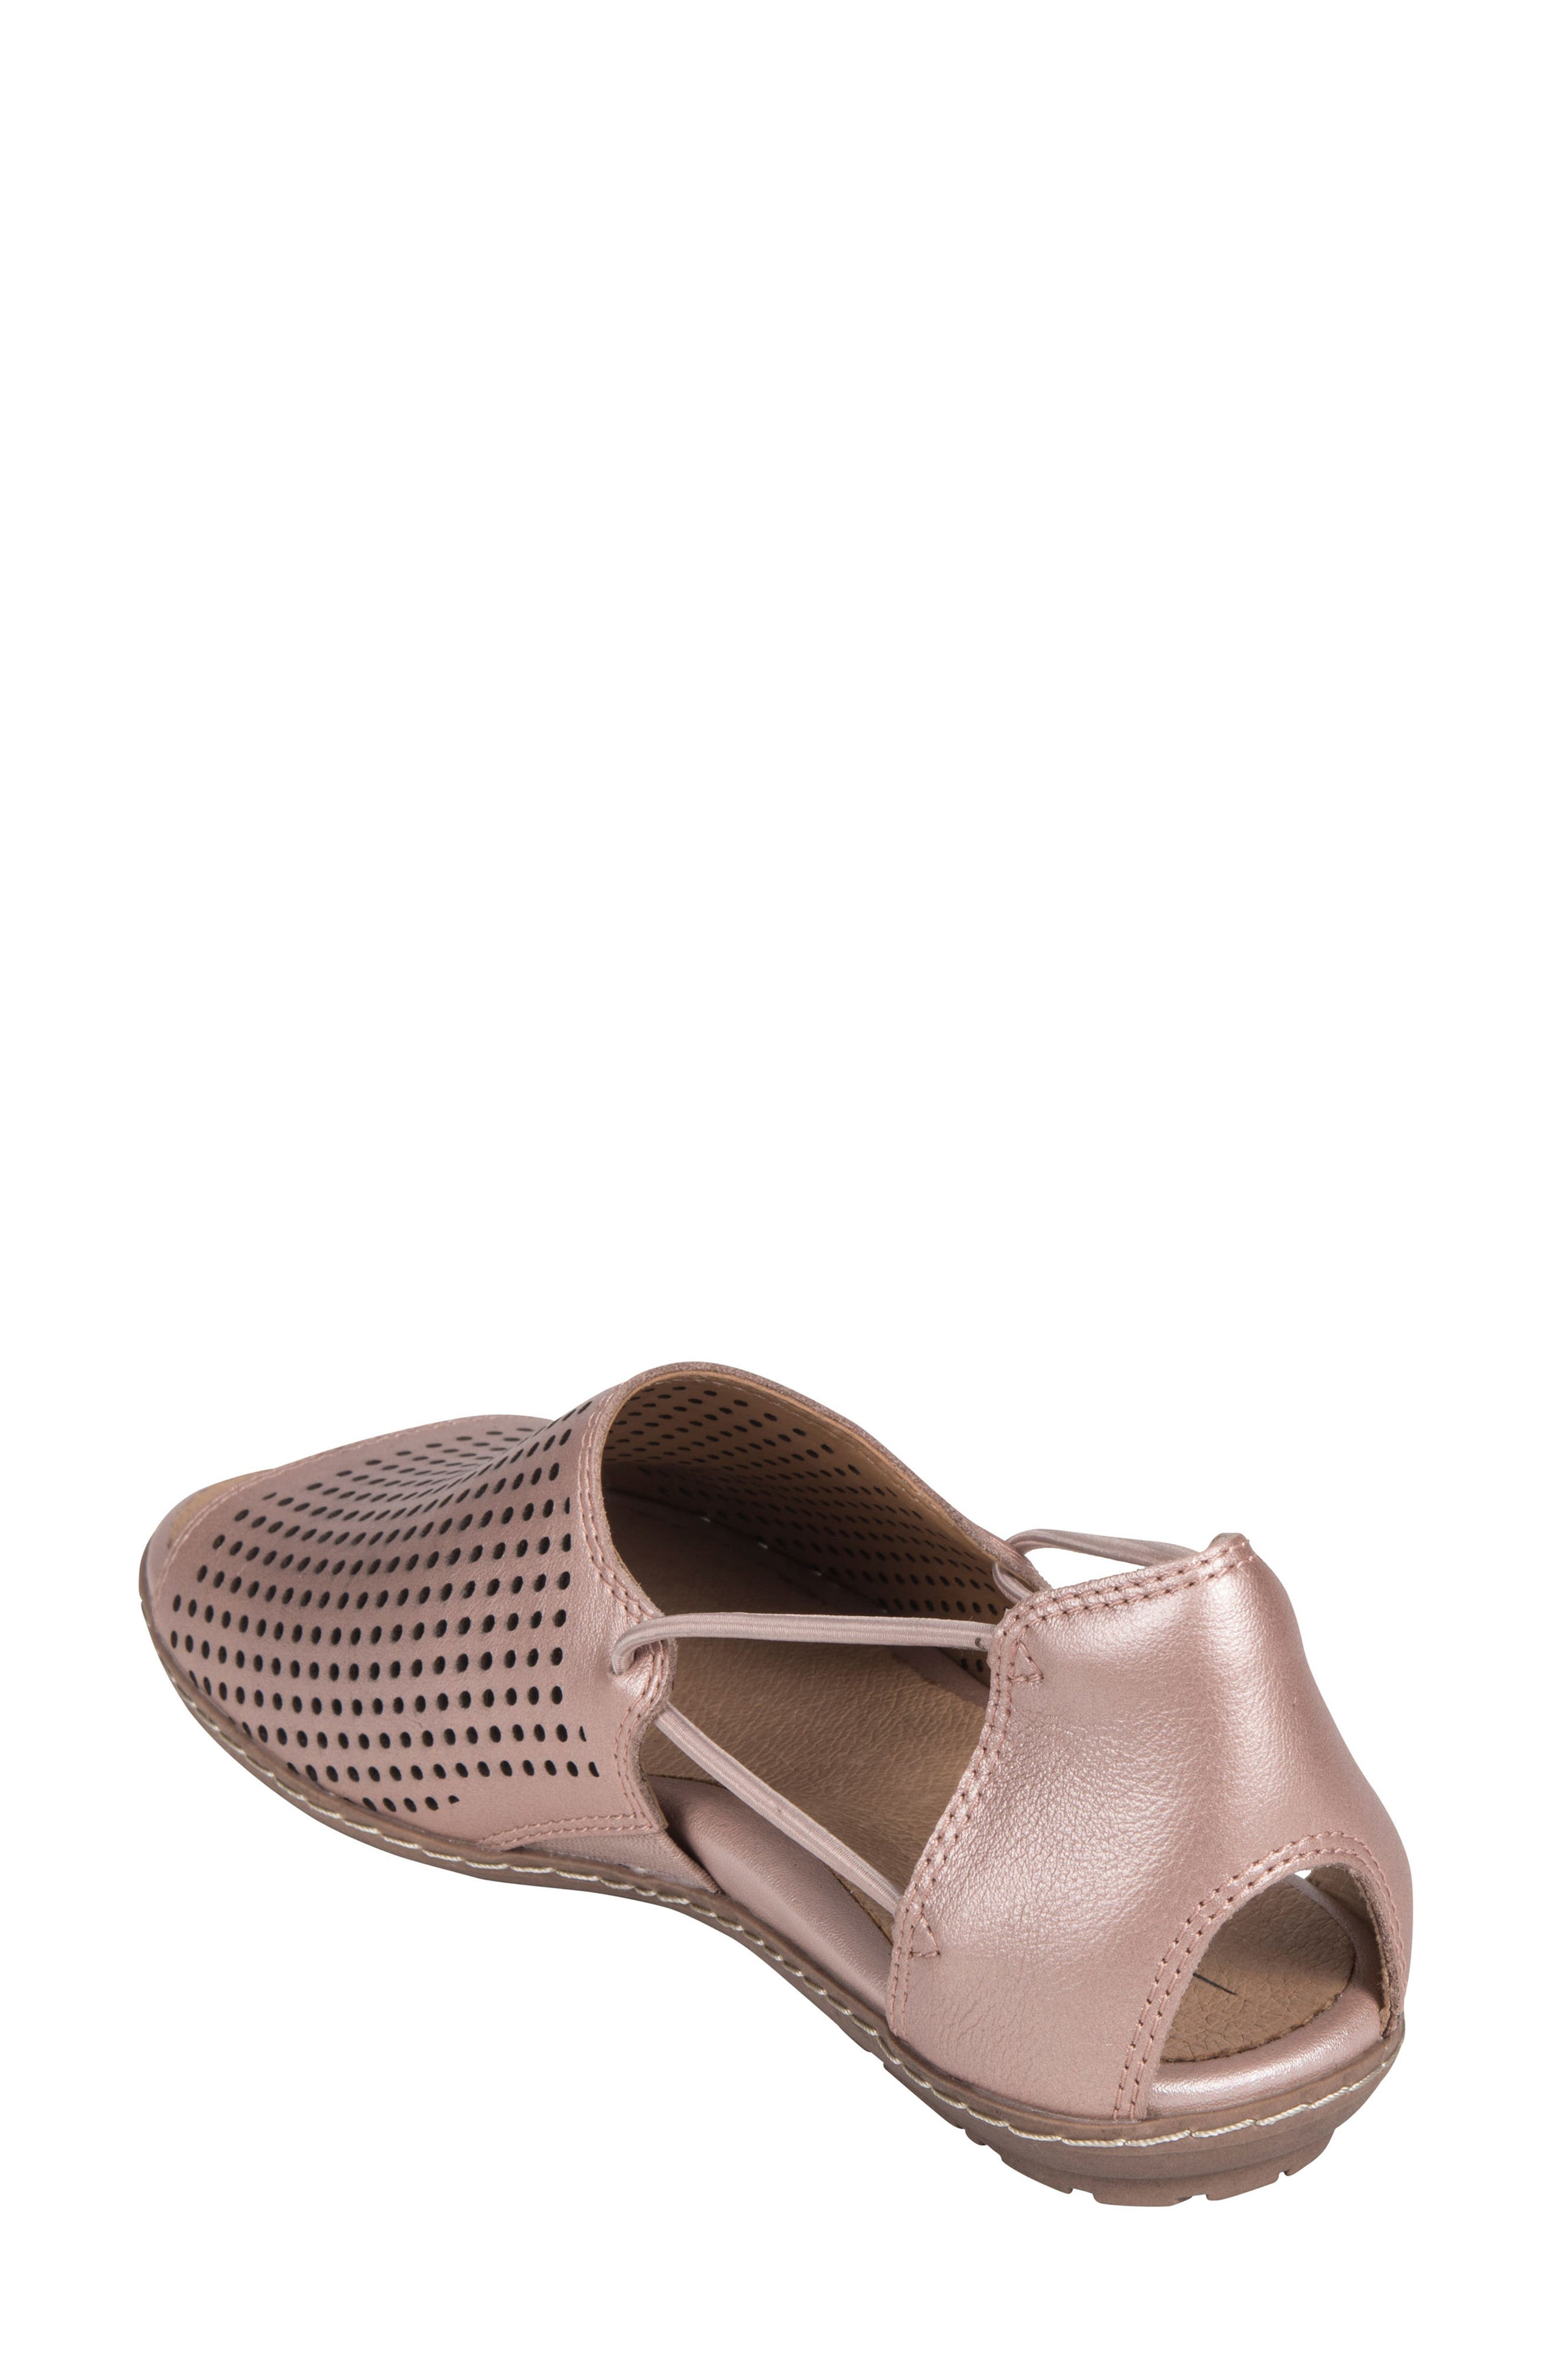 Shelly Sandal,                             Alternate thumbnail 2, color,                             BLUSH METALLIC LEATHER